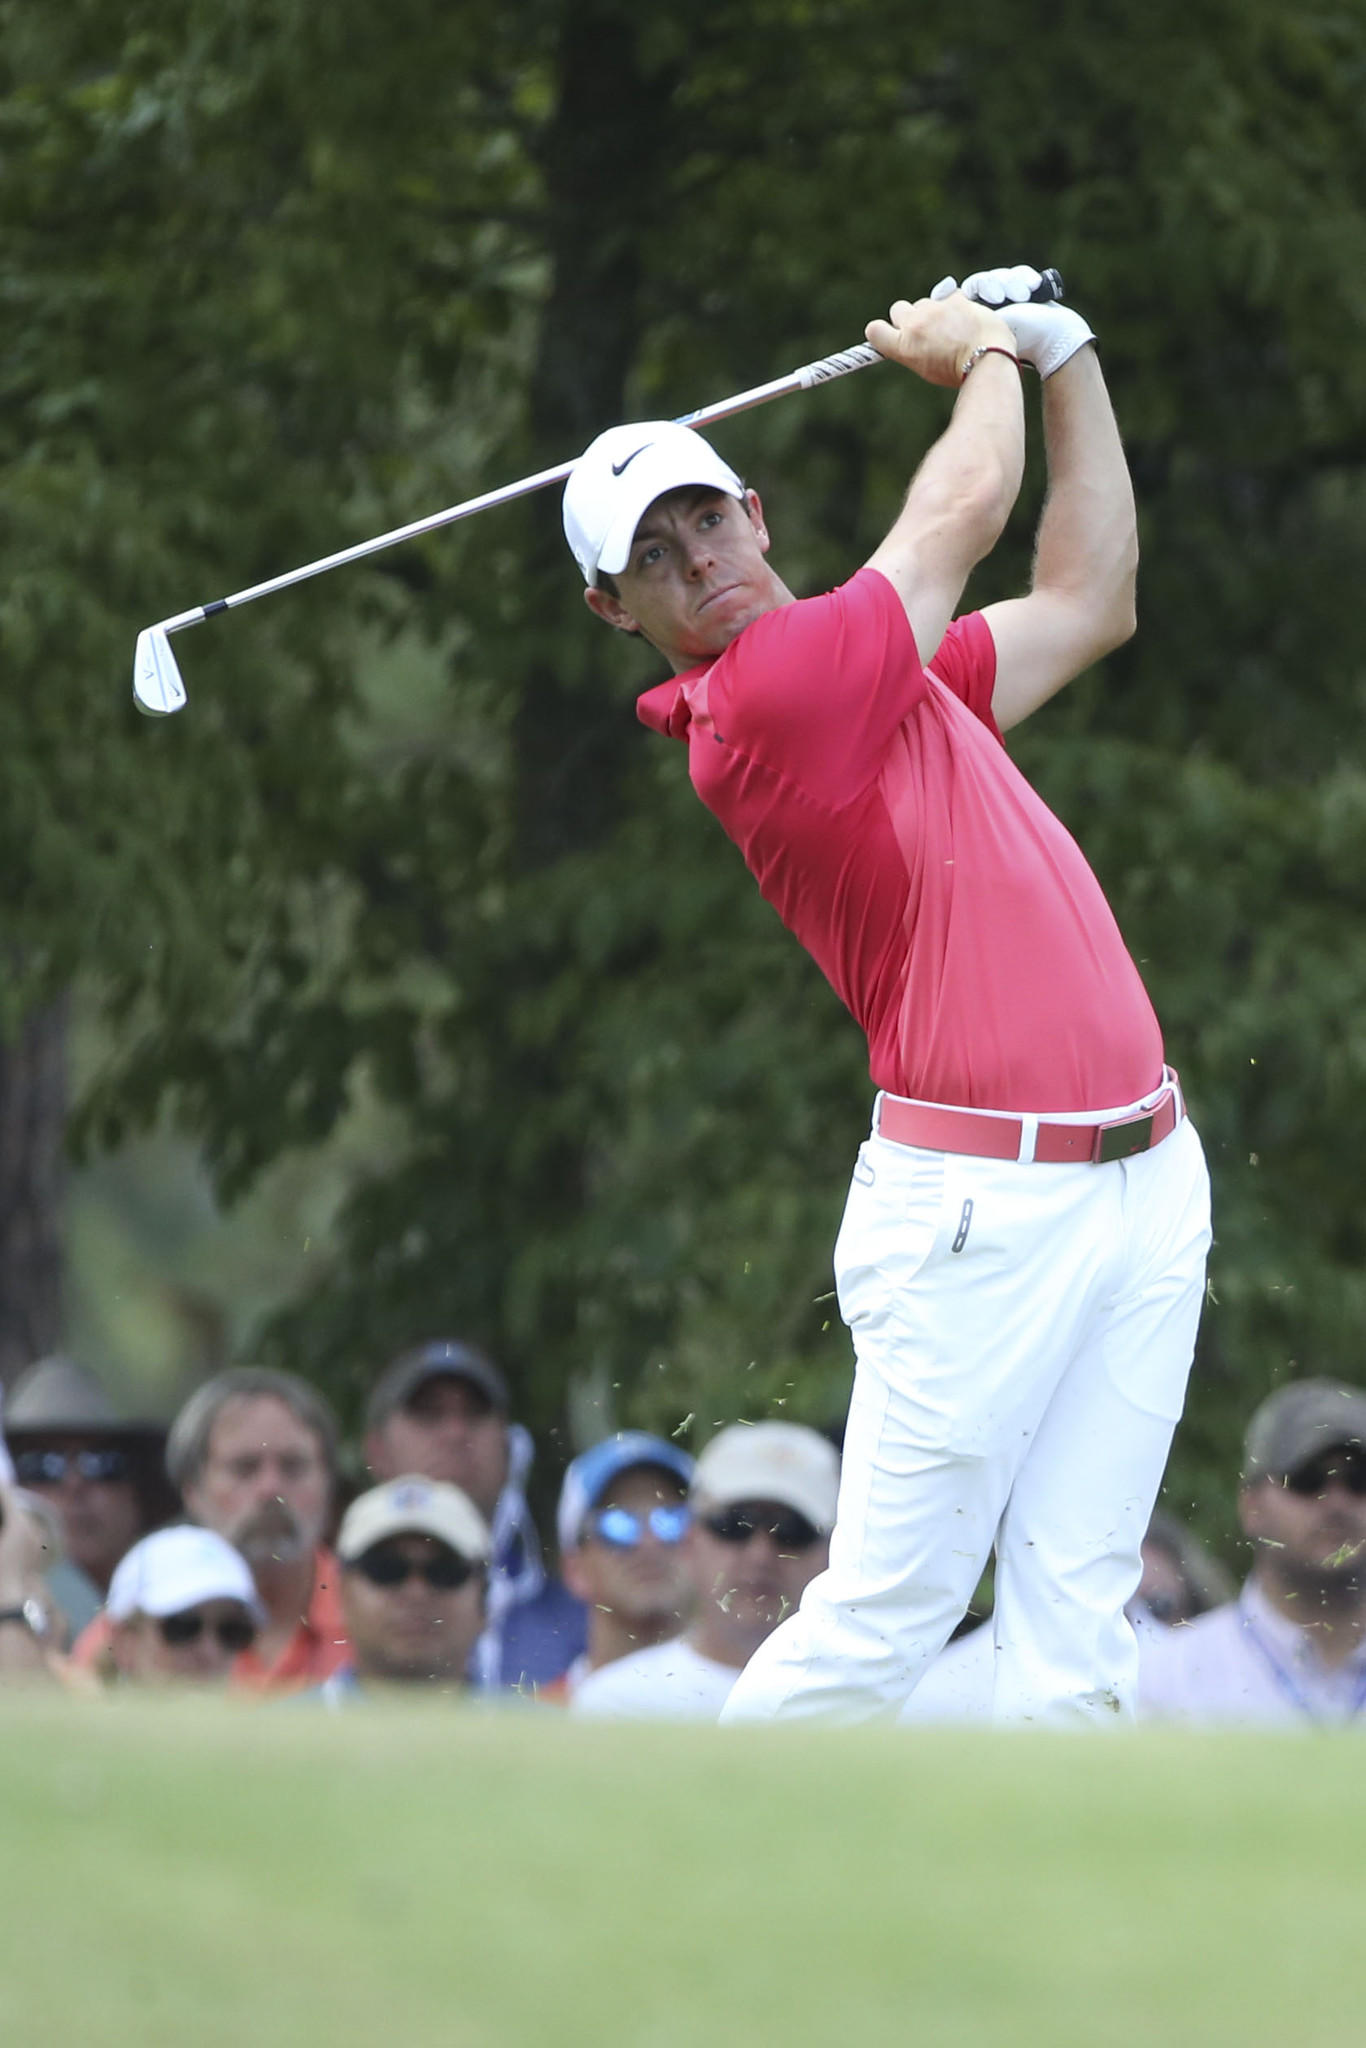 Rory McIlroy tees off the 17th hole during the second round of the 2014 U.S. Open.